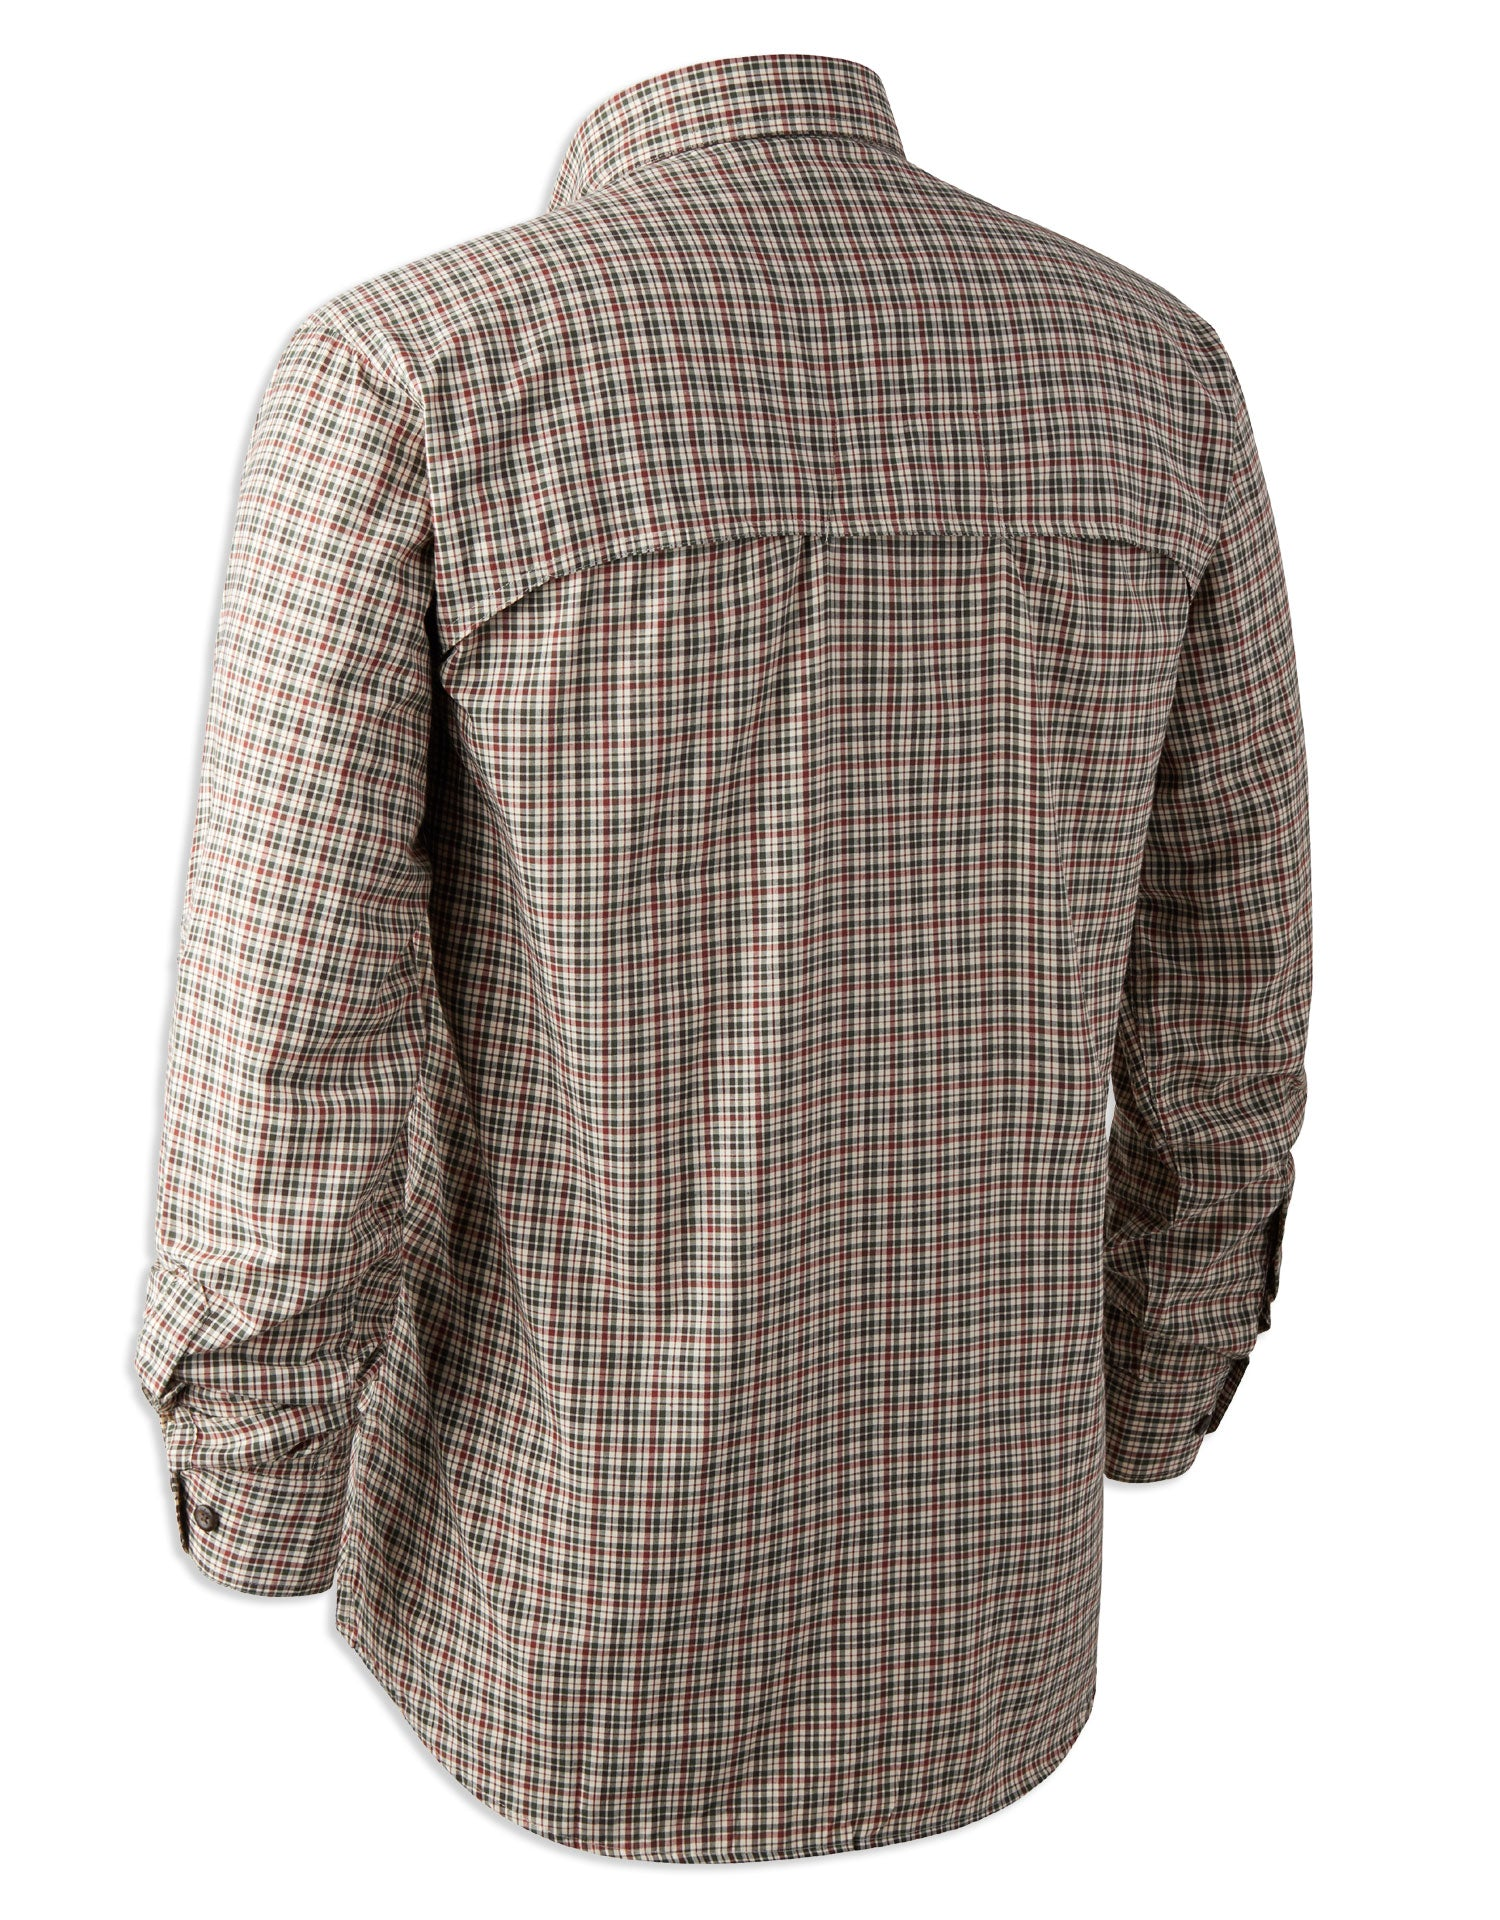 rear view showing shoulder vents on check shirt